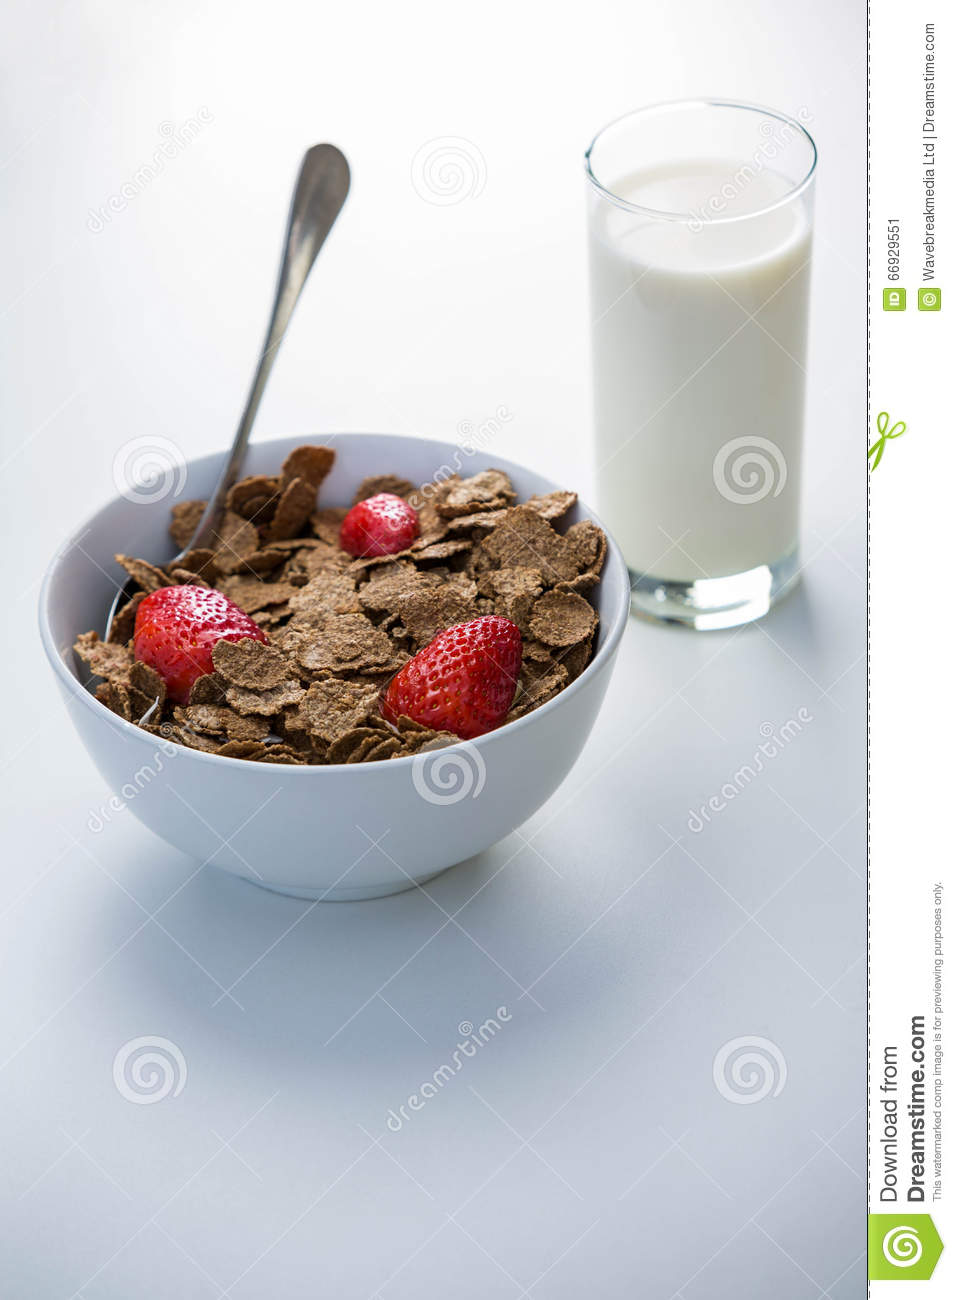 View of a bowl of cereals and glass of milk